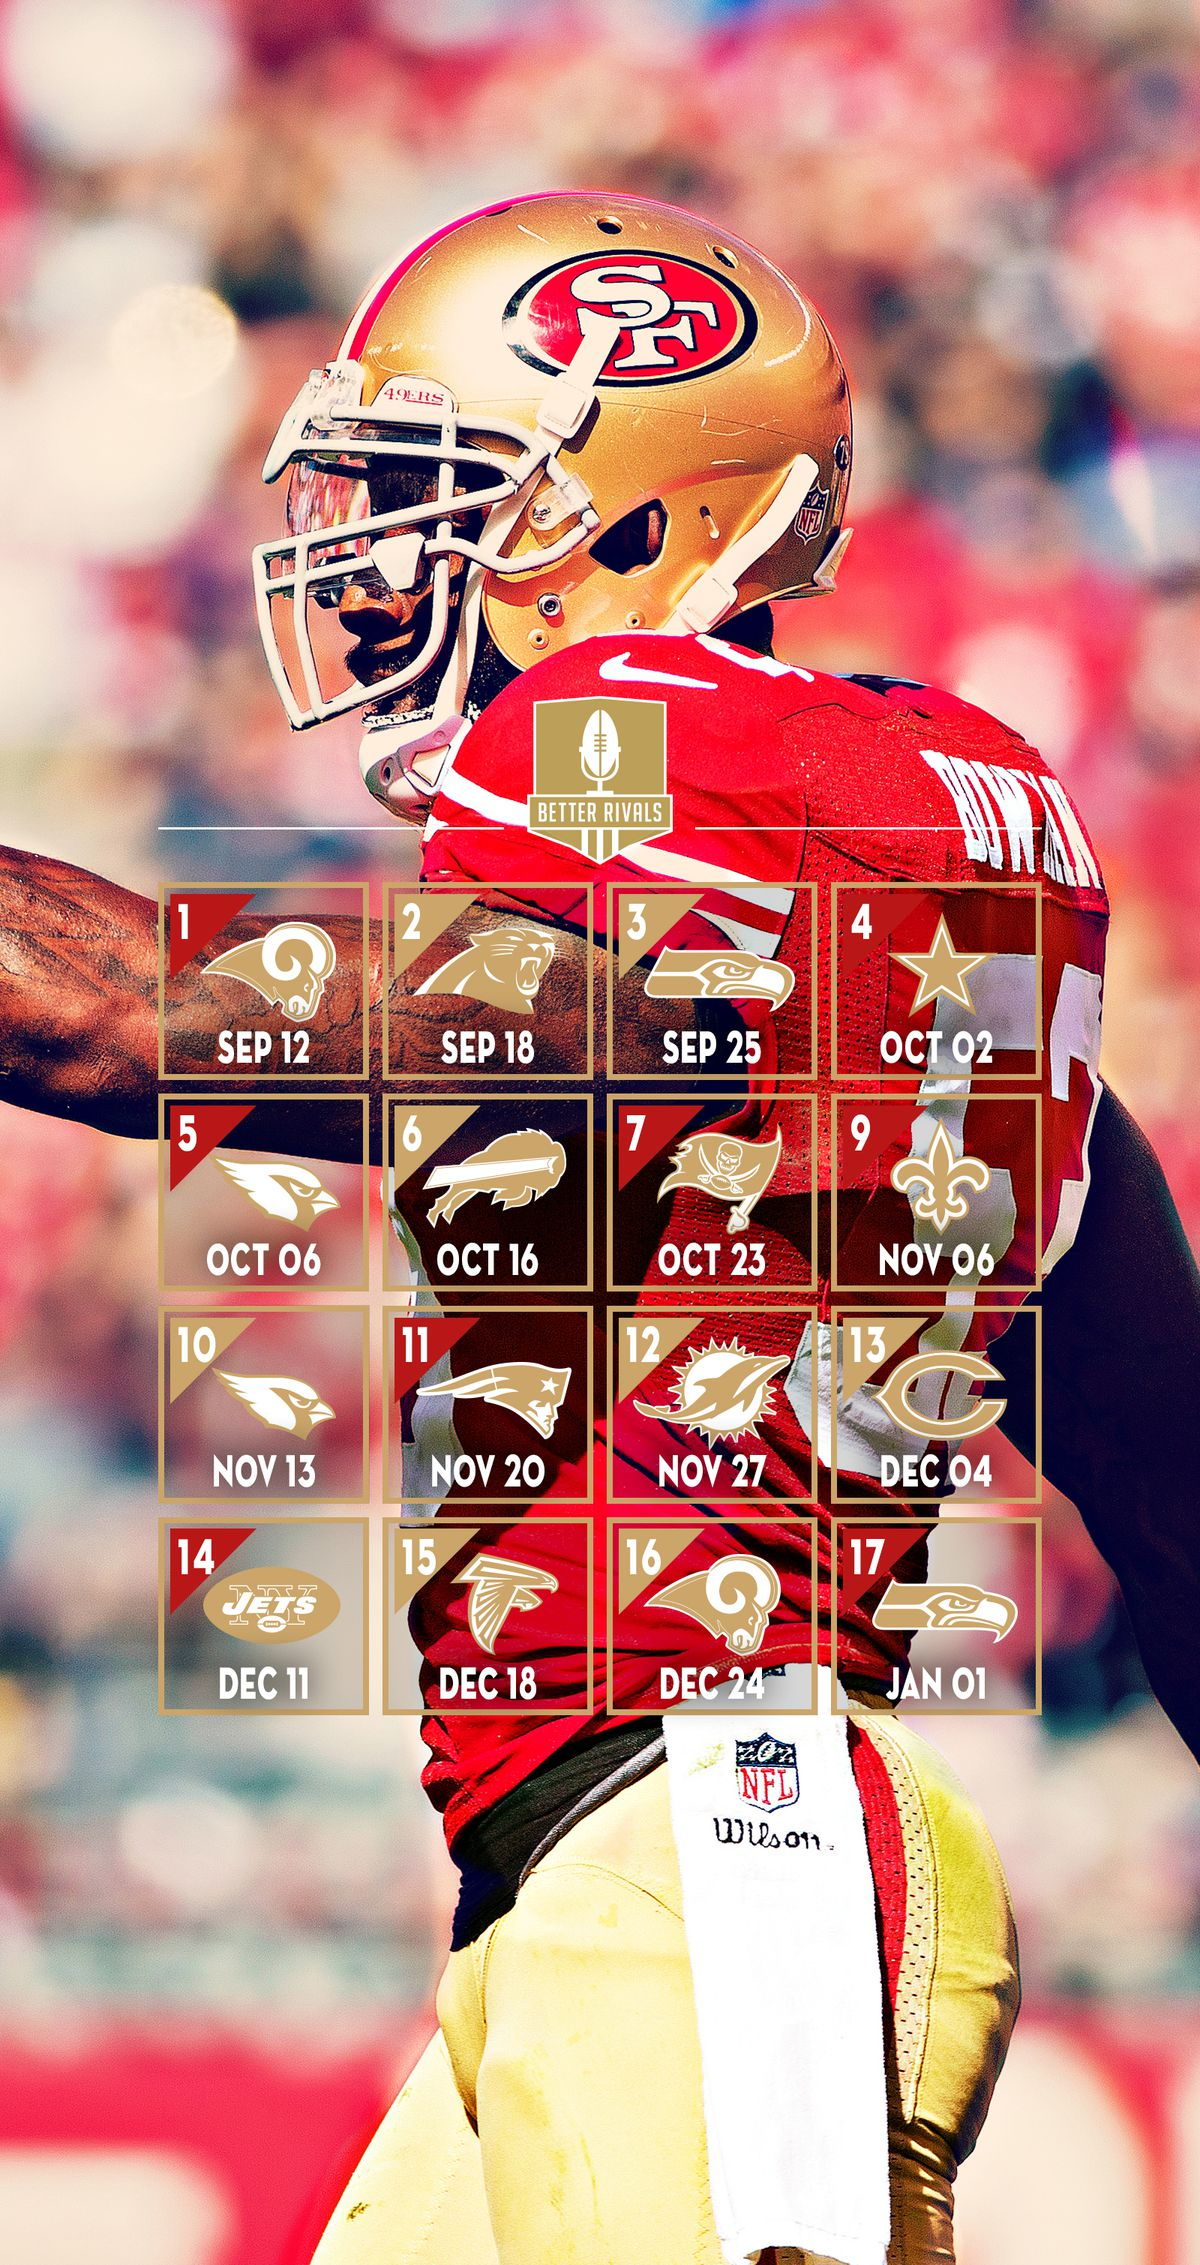 New 49ers wallpapers for desktop and mobile niners nation - 49ers wallpaper iphone 5 ...